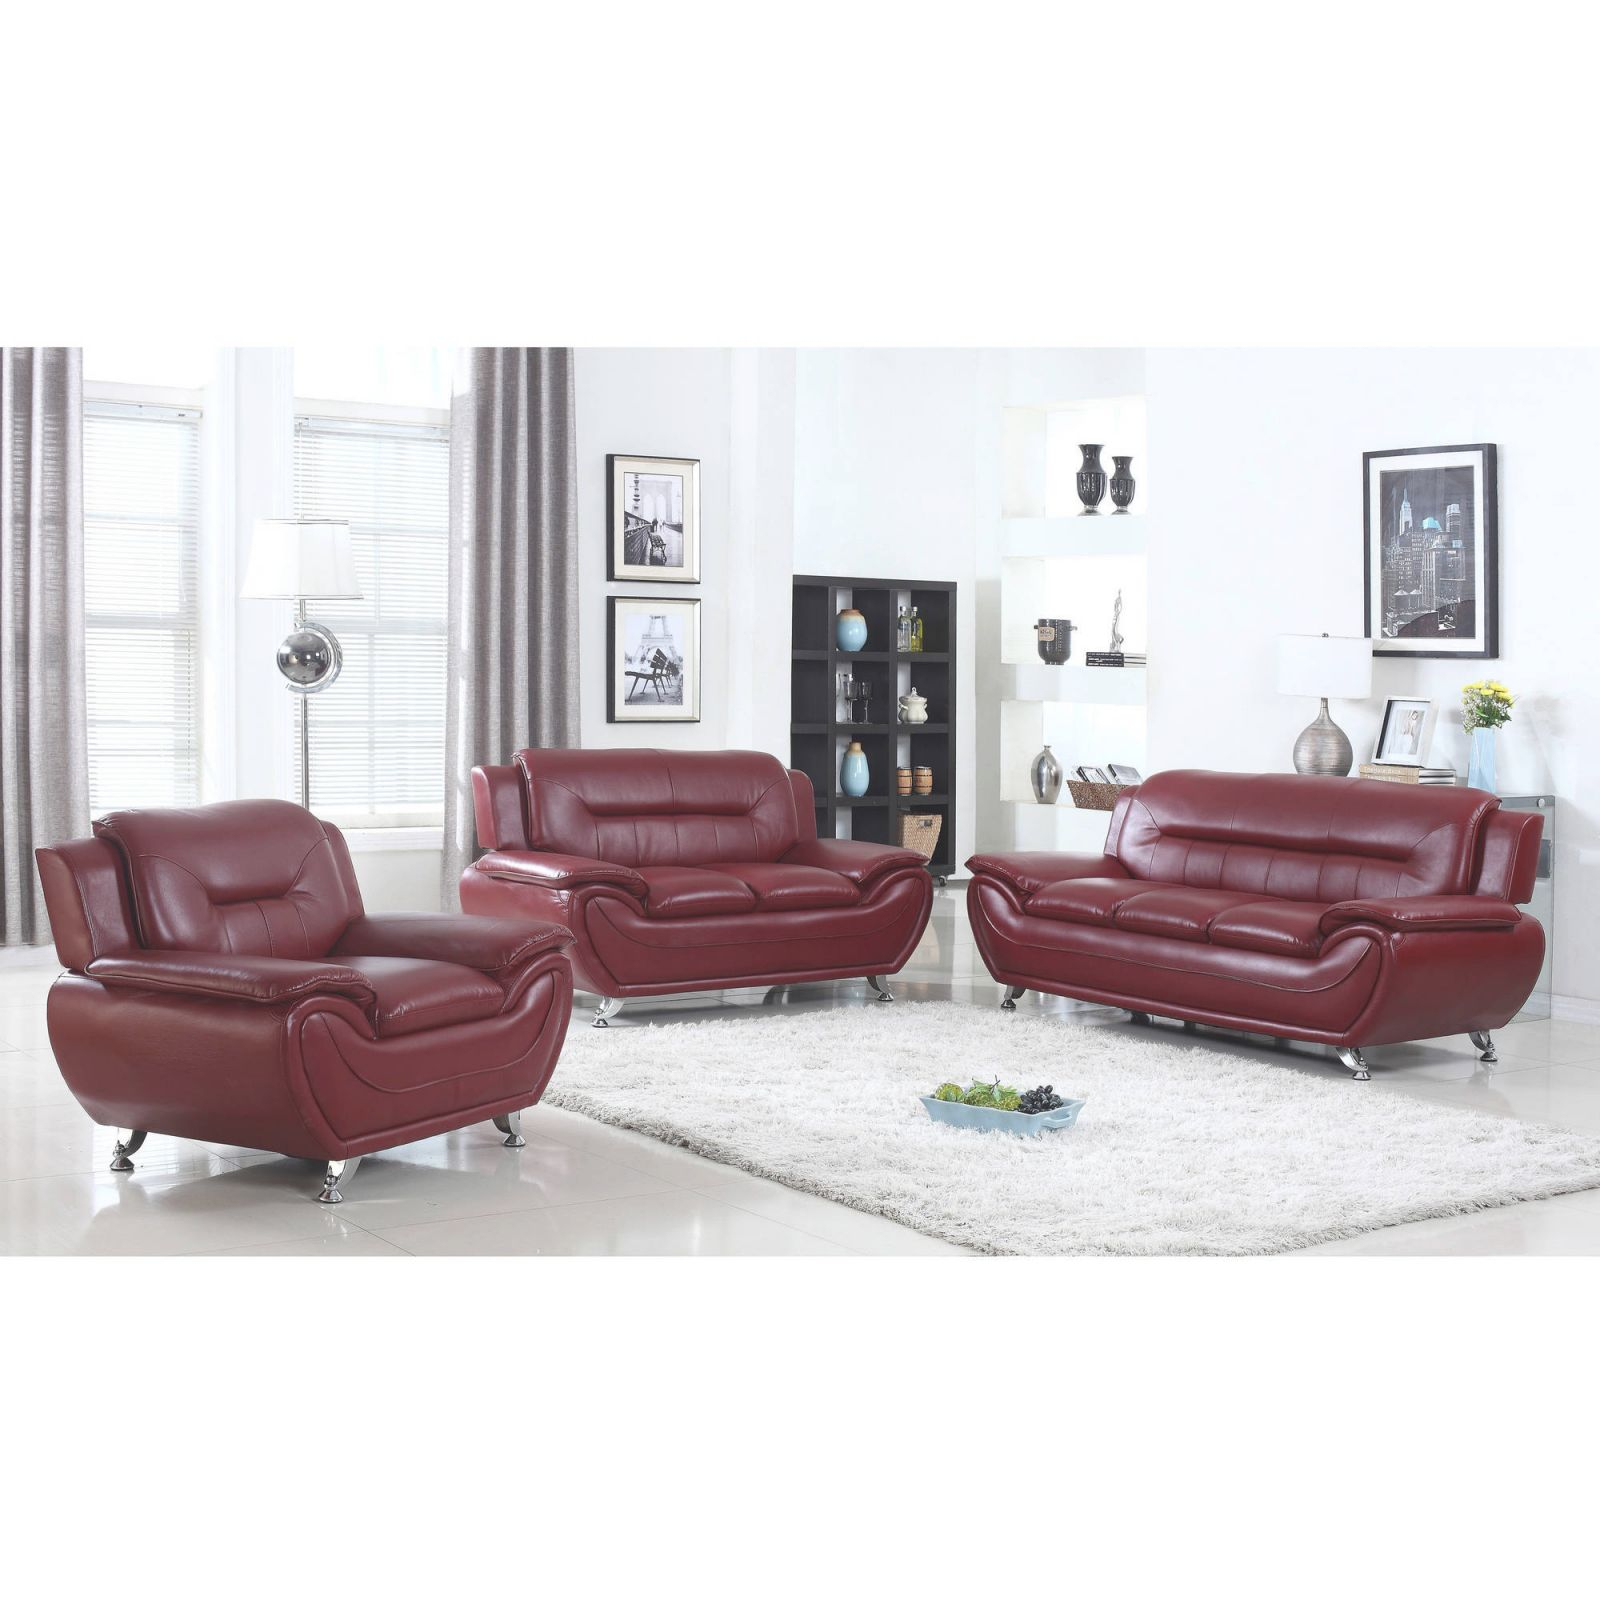 Ufe Norton Burgundy Faux Leather 3-Piece Modern Living Room Sofa Set with regard to Modern Living Room Furniture